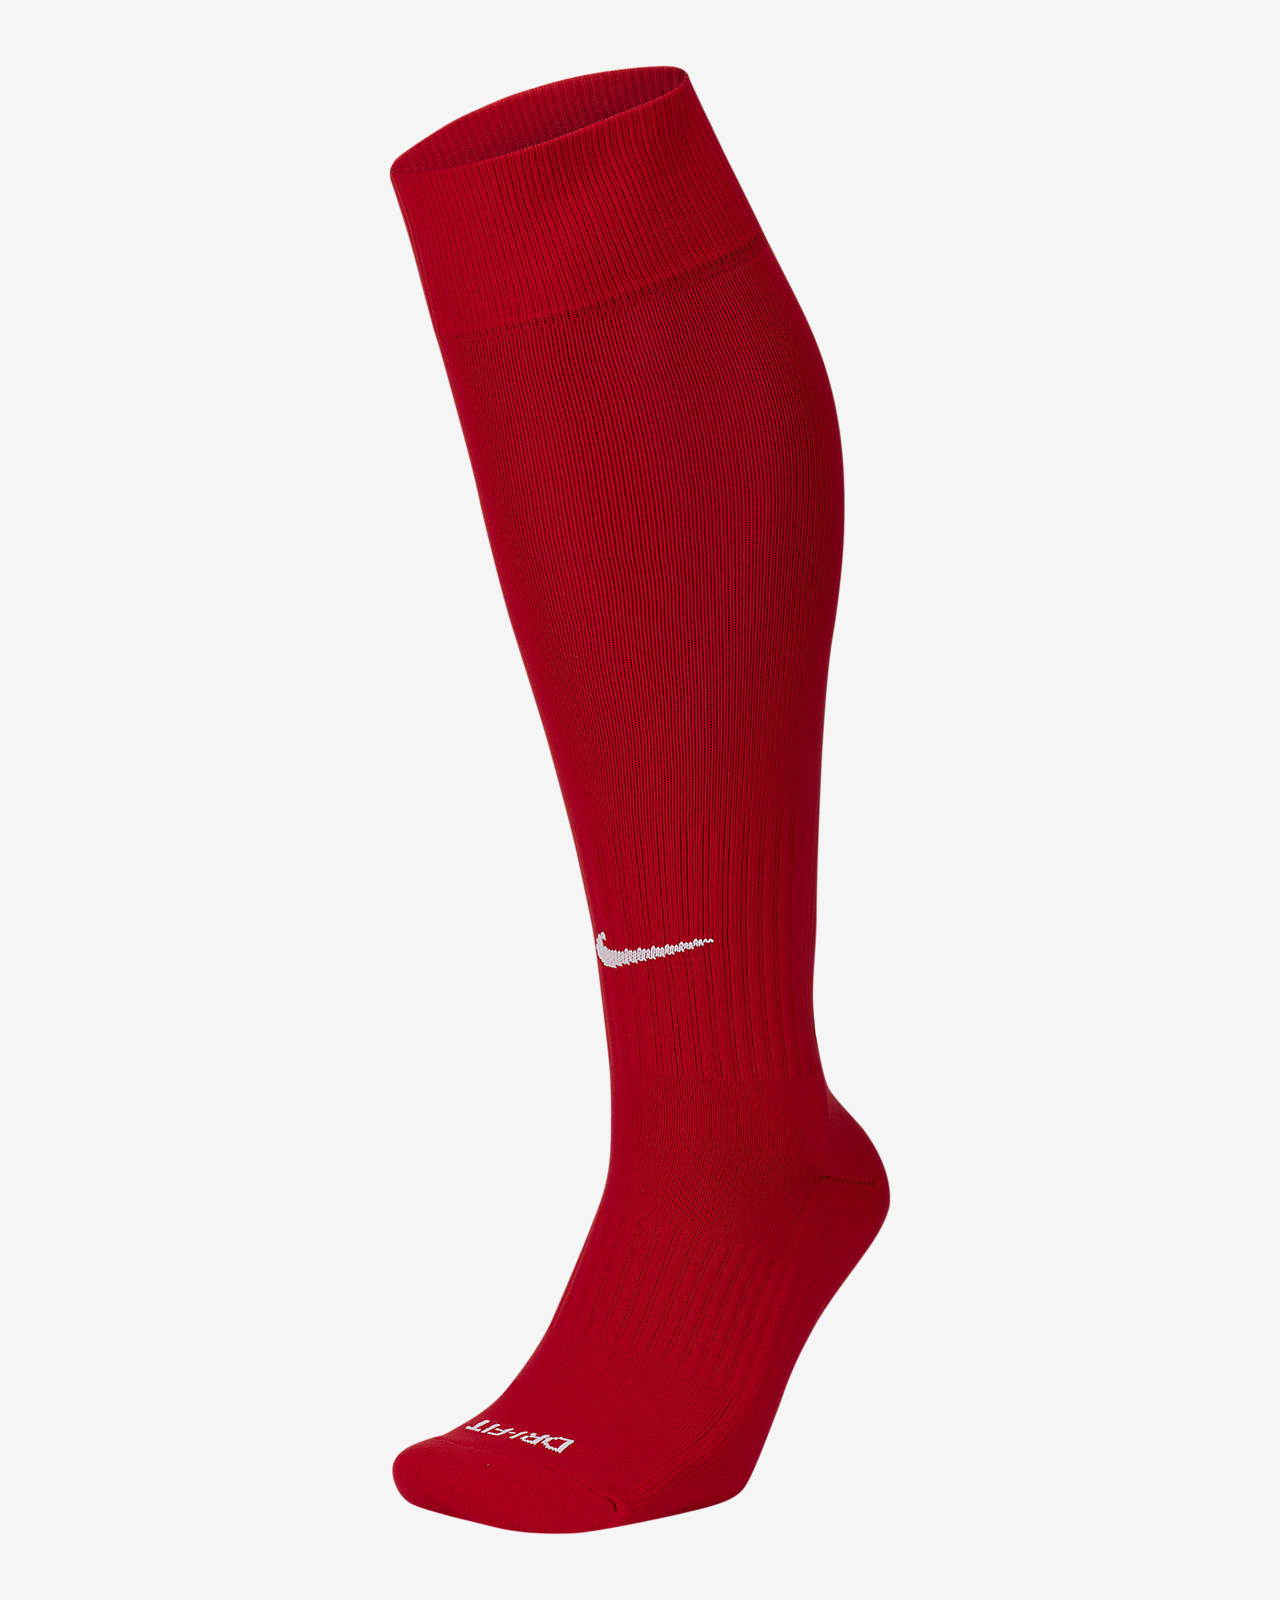 Nike Classic 2 Cushioned gedämpfte Over-the-Calf Socken